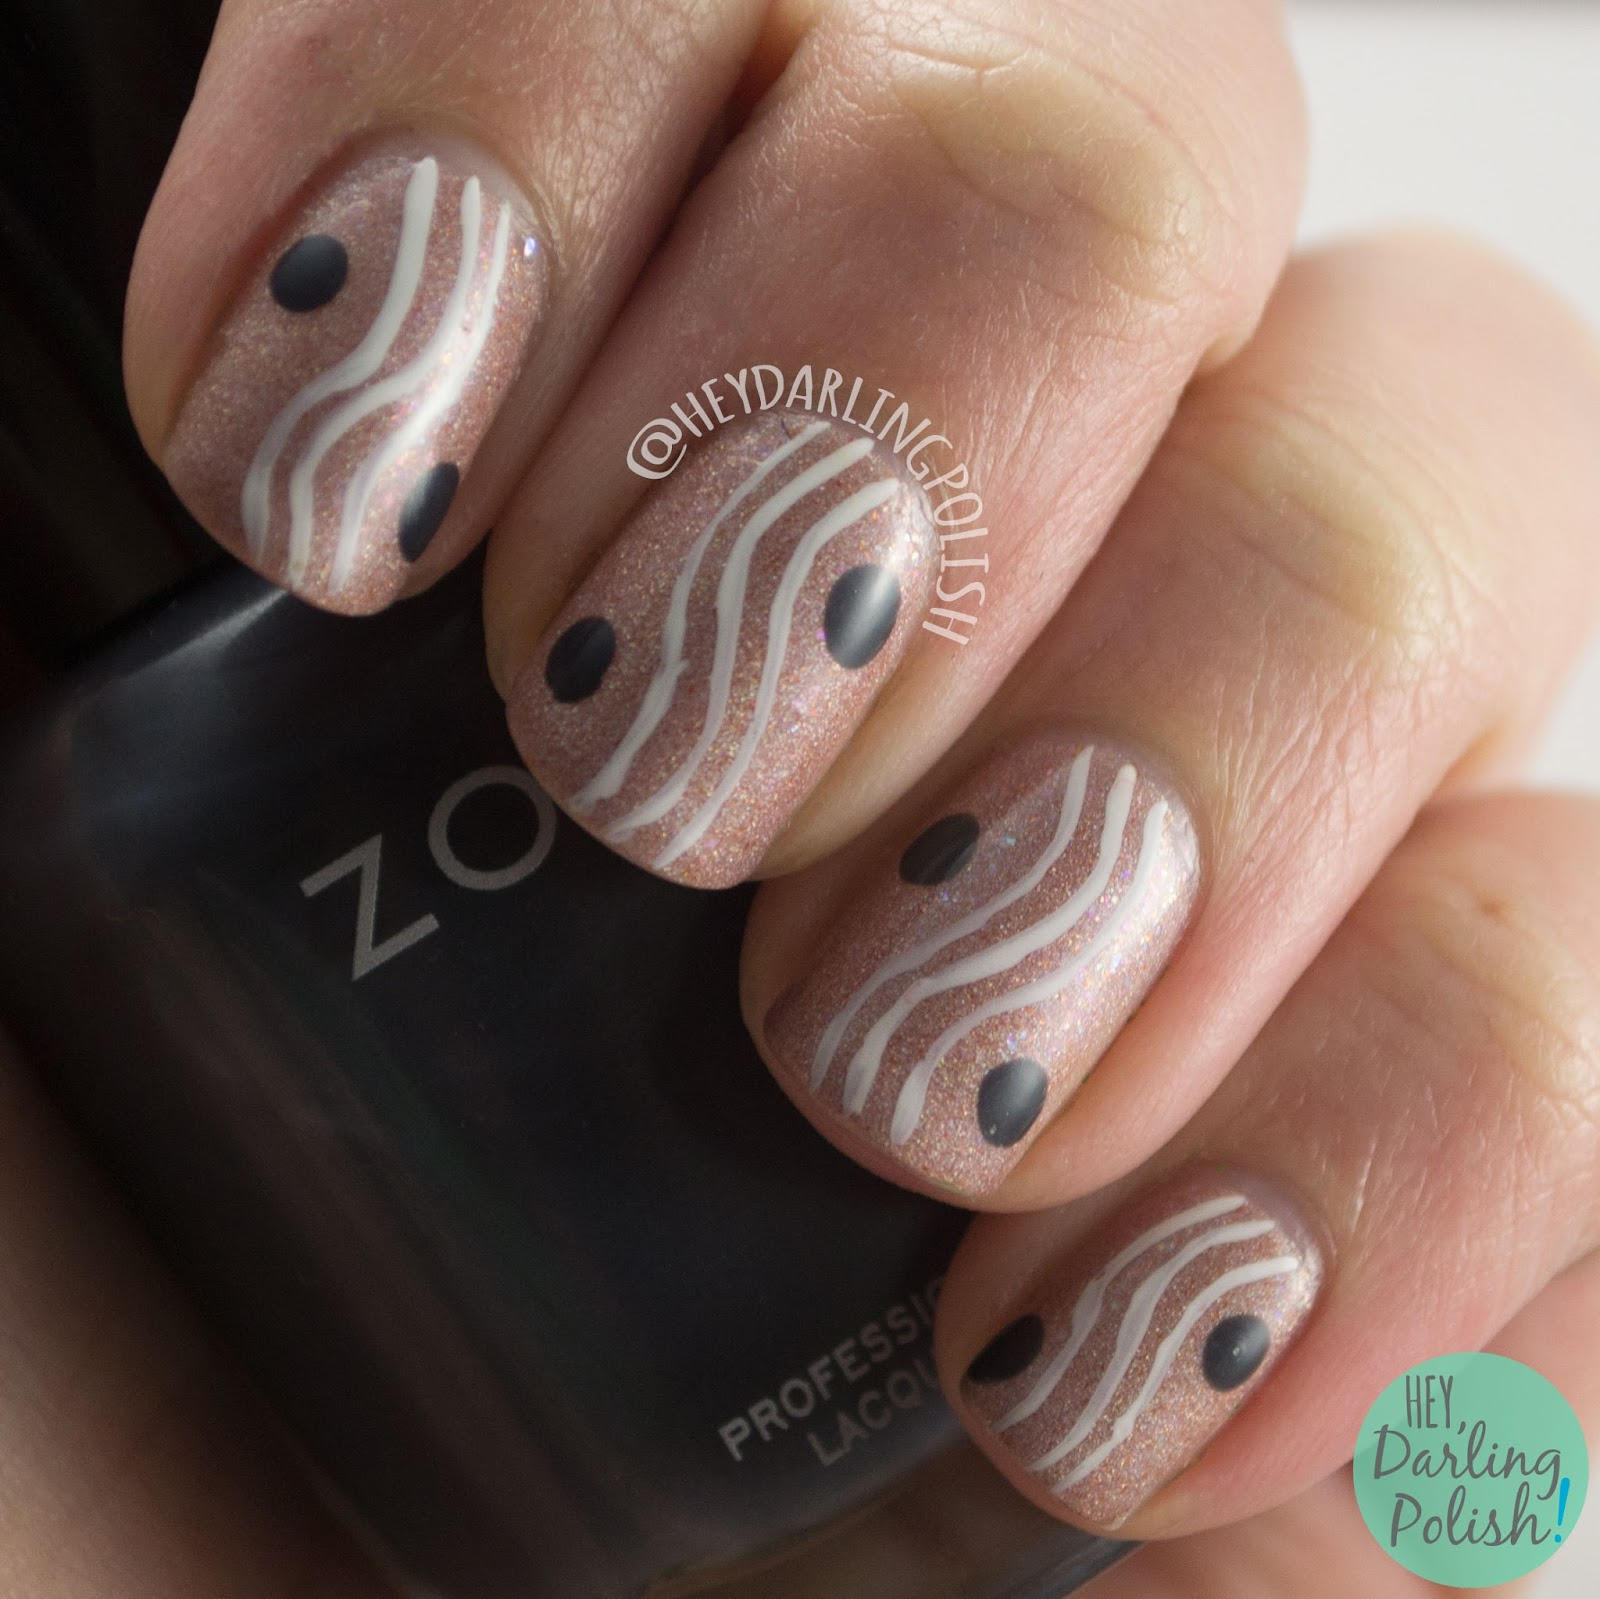 nails, nail art, nail polish, love angeline, tranquility, zen garden, hey darling polish, 2015 cnt 31 day challenge, indie polish